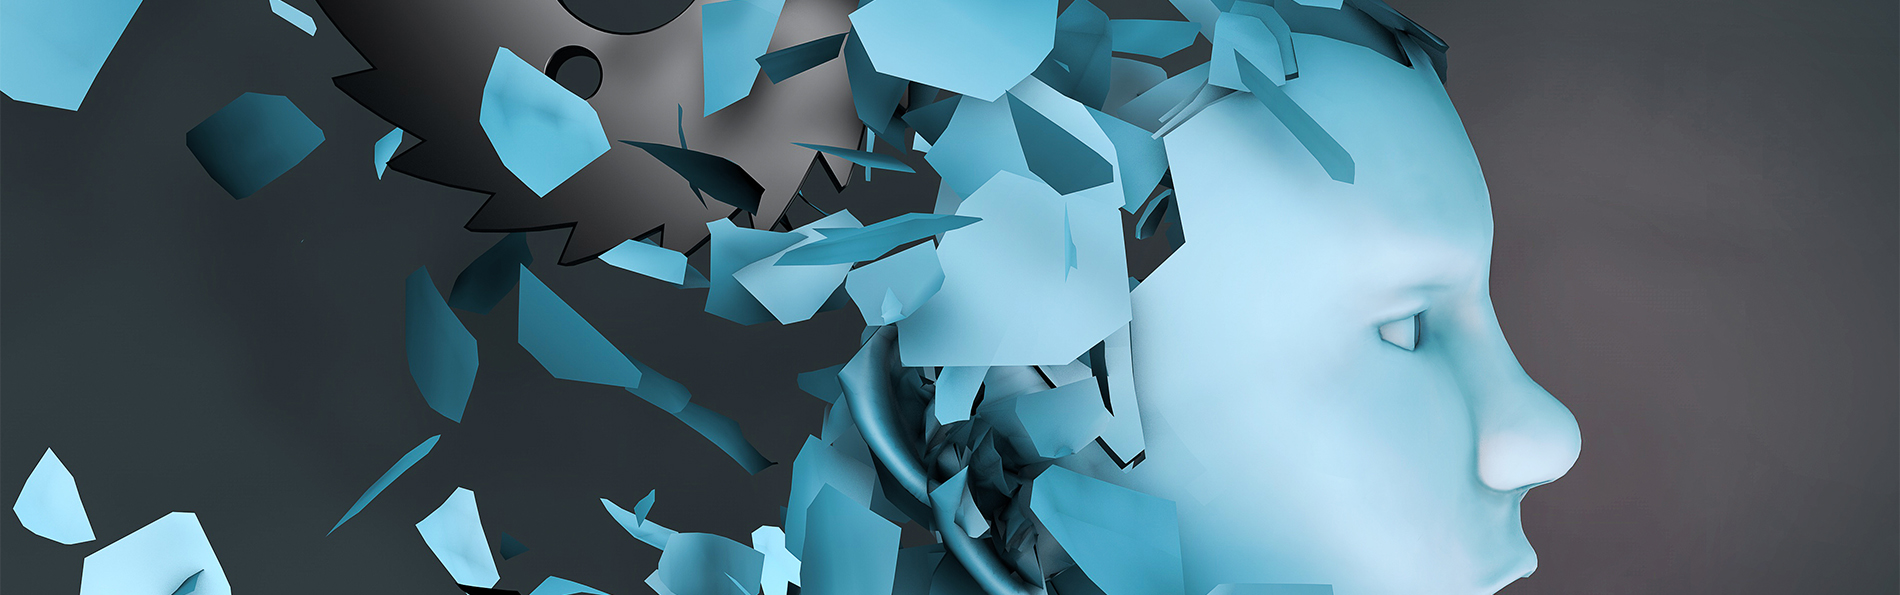 Graphic art of fractured blue head